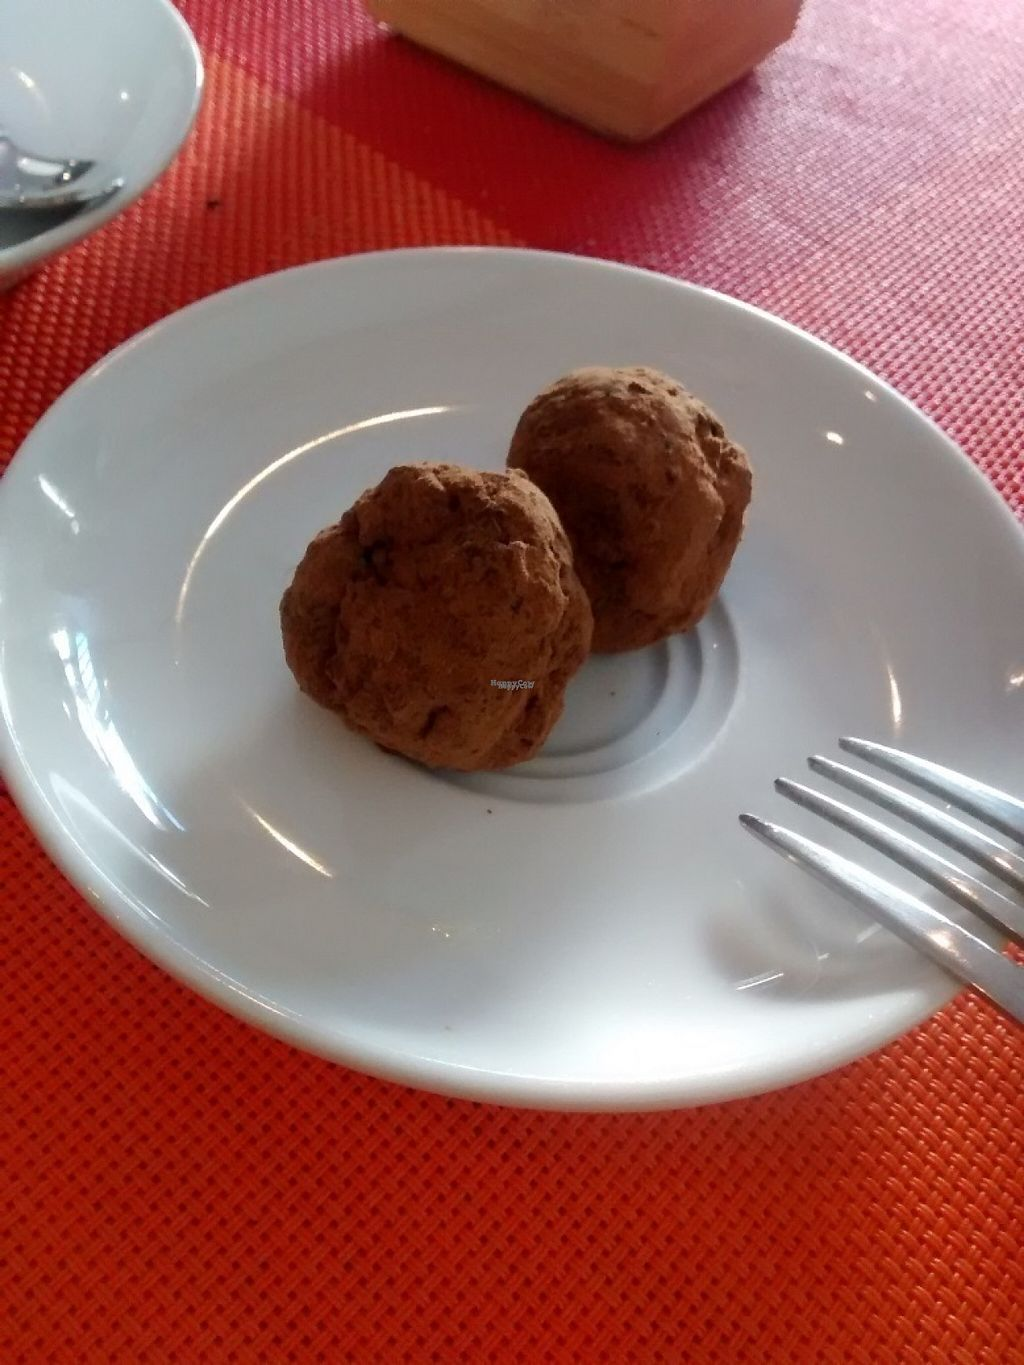 """Photo of CLOSED: Awa Viva - Biofood  by <a href=""""/members/profile/LeFunks"""">LeFunks</a> <br/>Dessert: raw chocolate truffle <br/> November 7, 2016  - <a href='/contact/abuse/image/69185/187214'>Report</a>"""